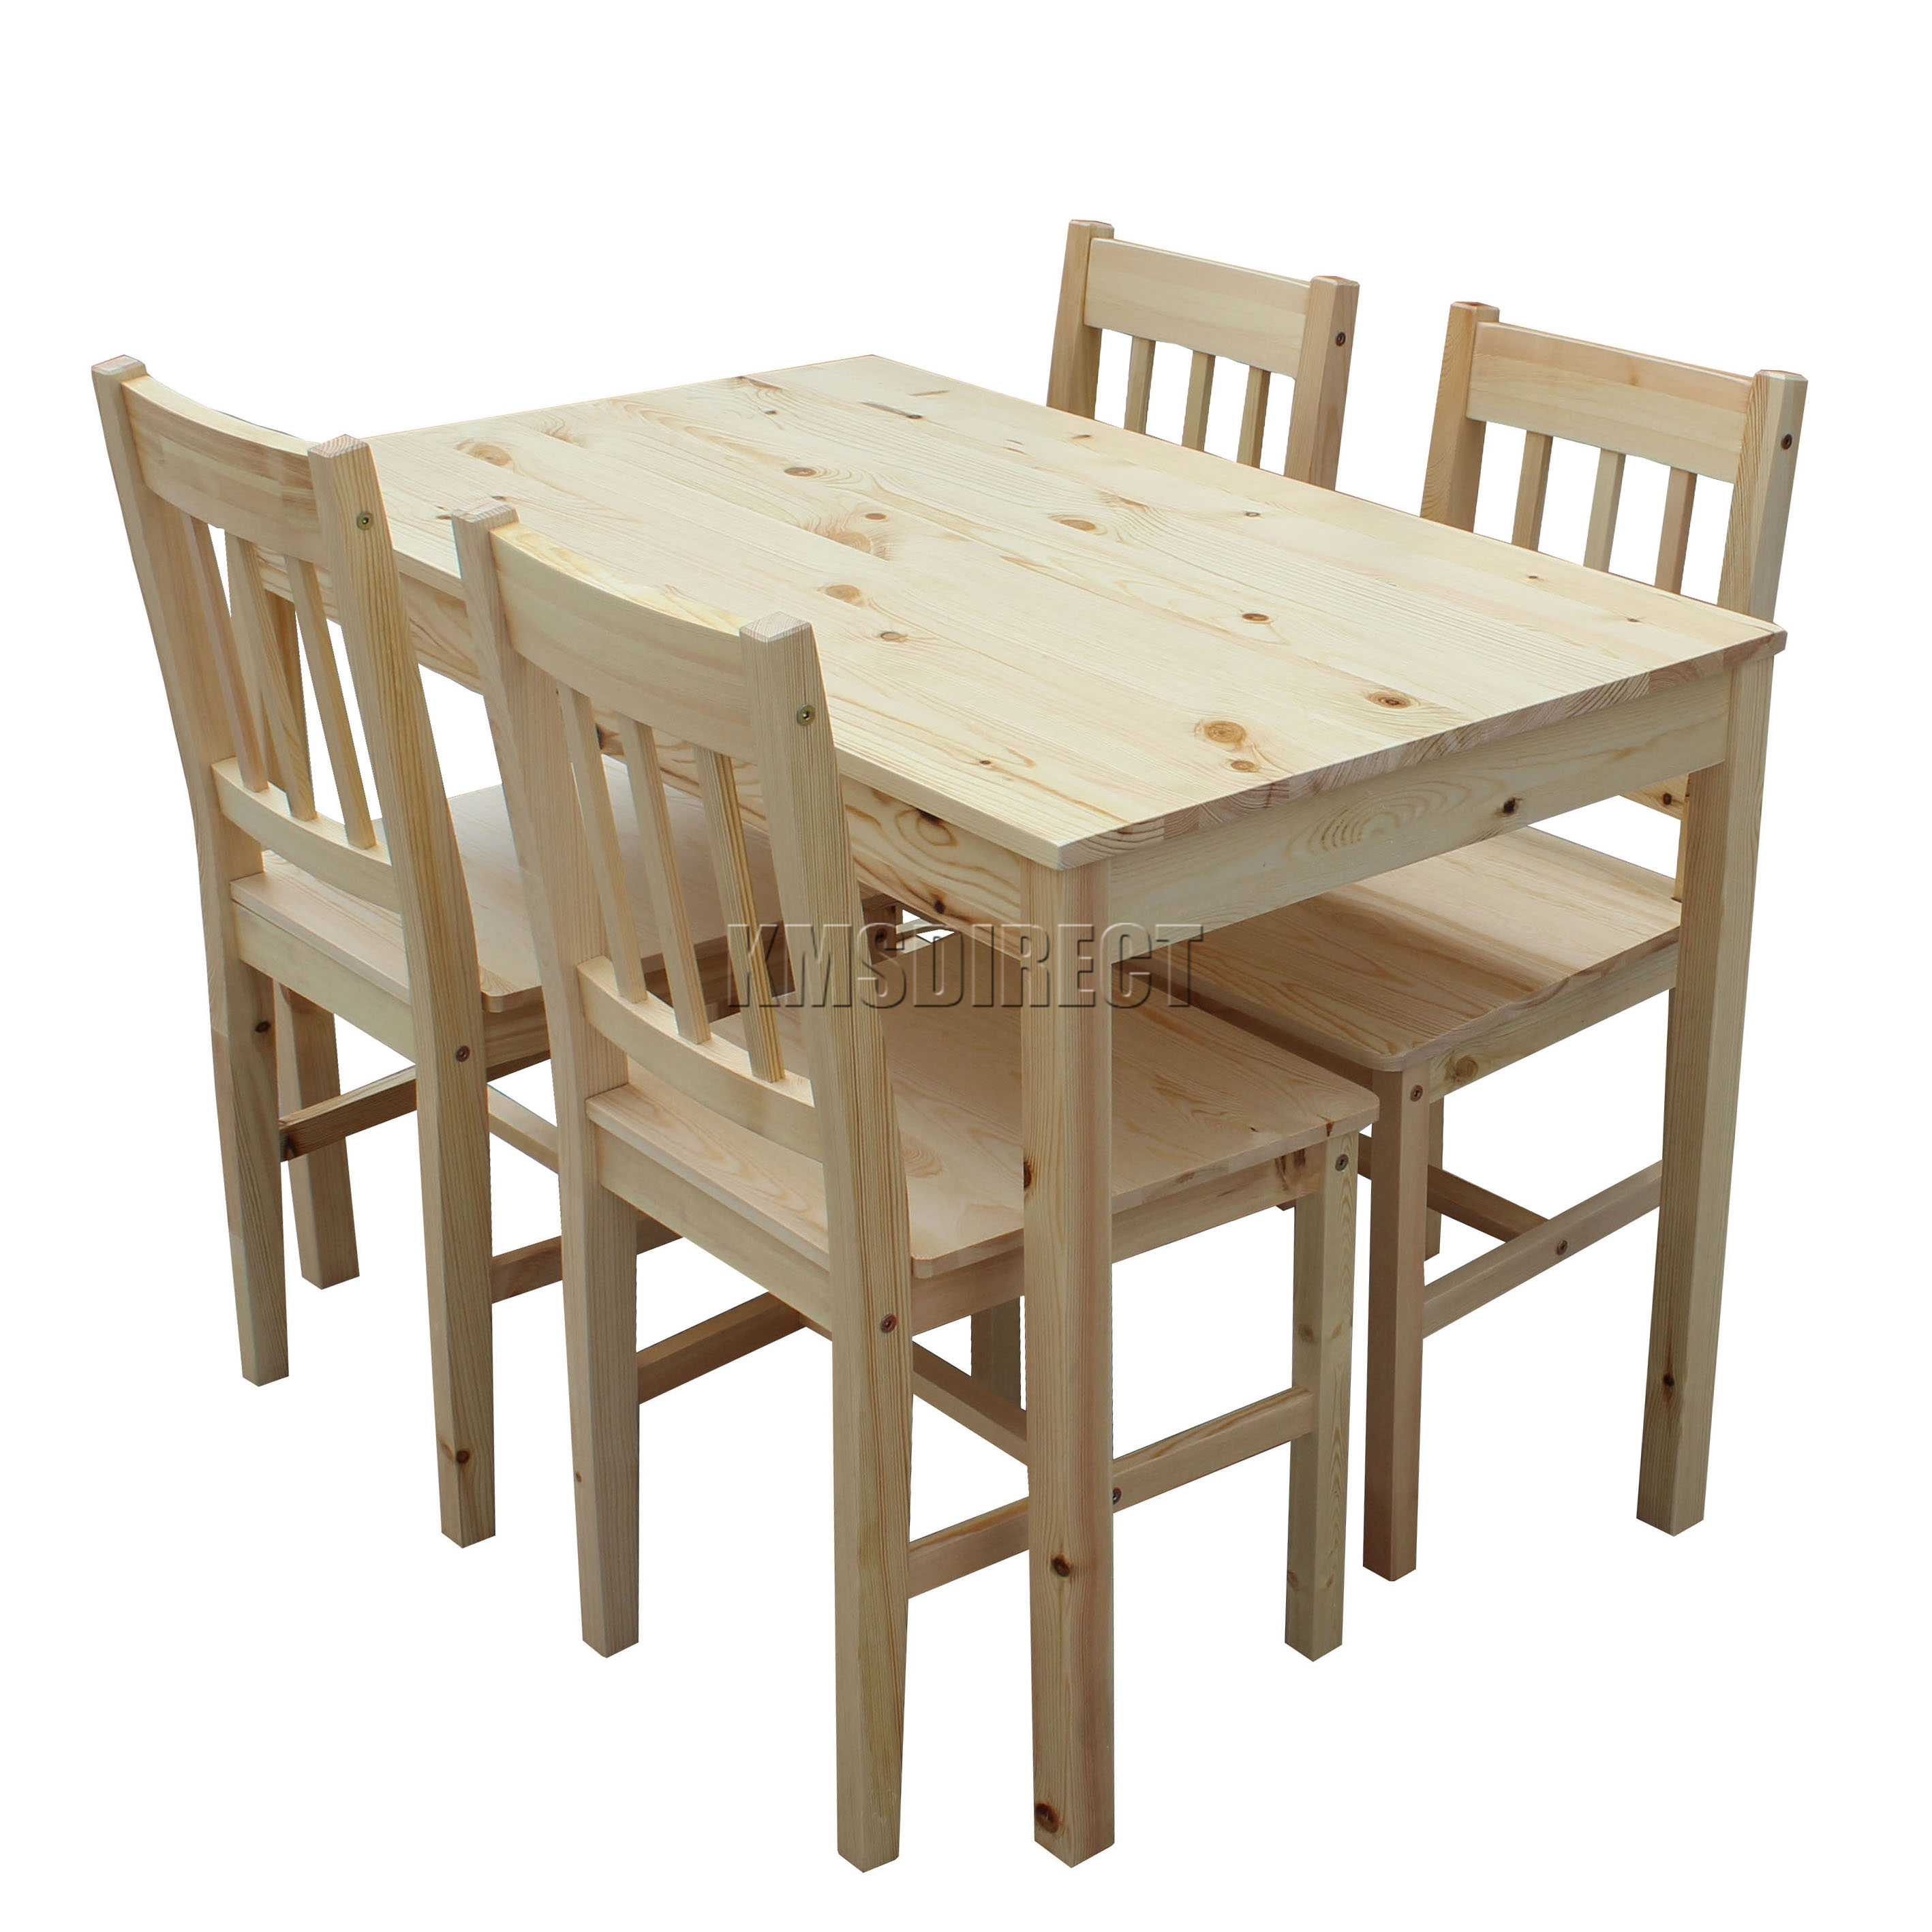 wooden kitchen table floor tiles home depot westwood quality solid dining and 4 chairs set sentinel ds02 pine